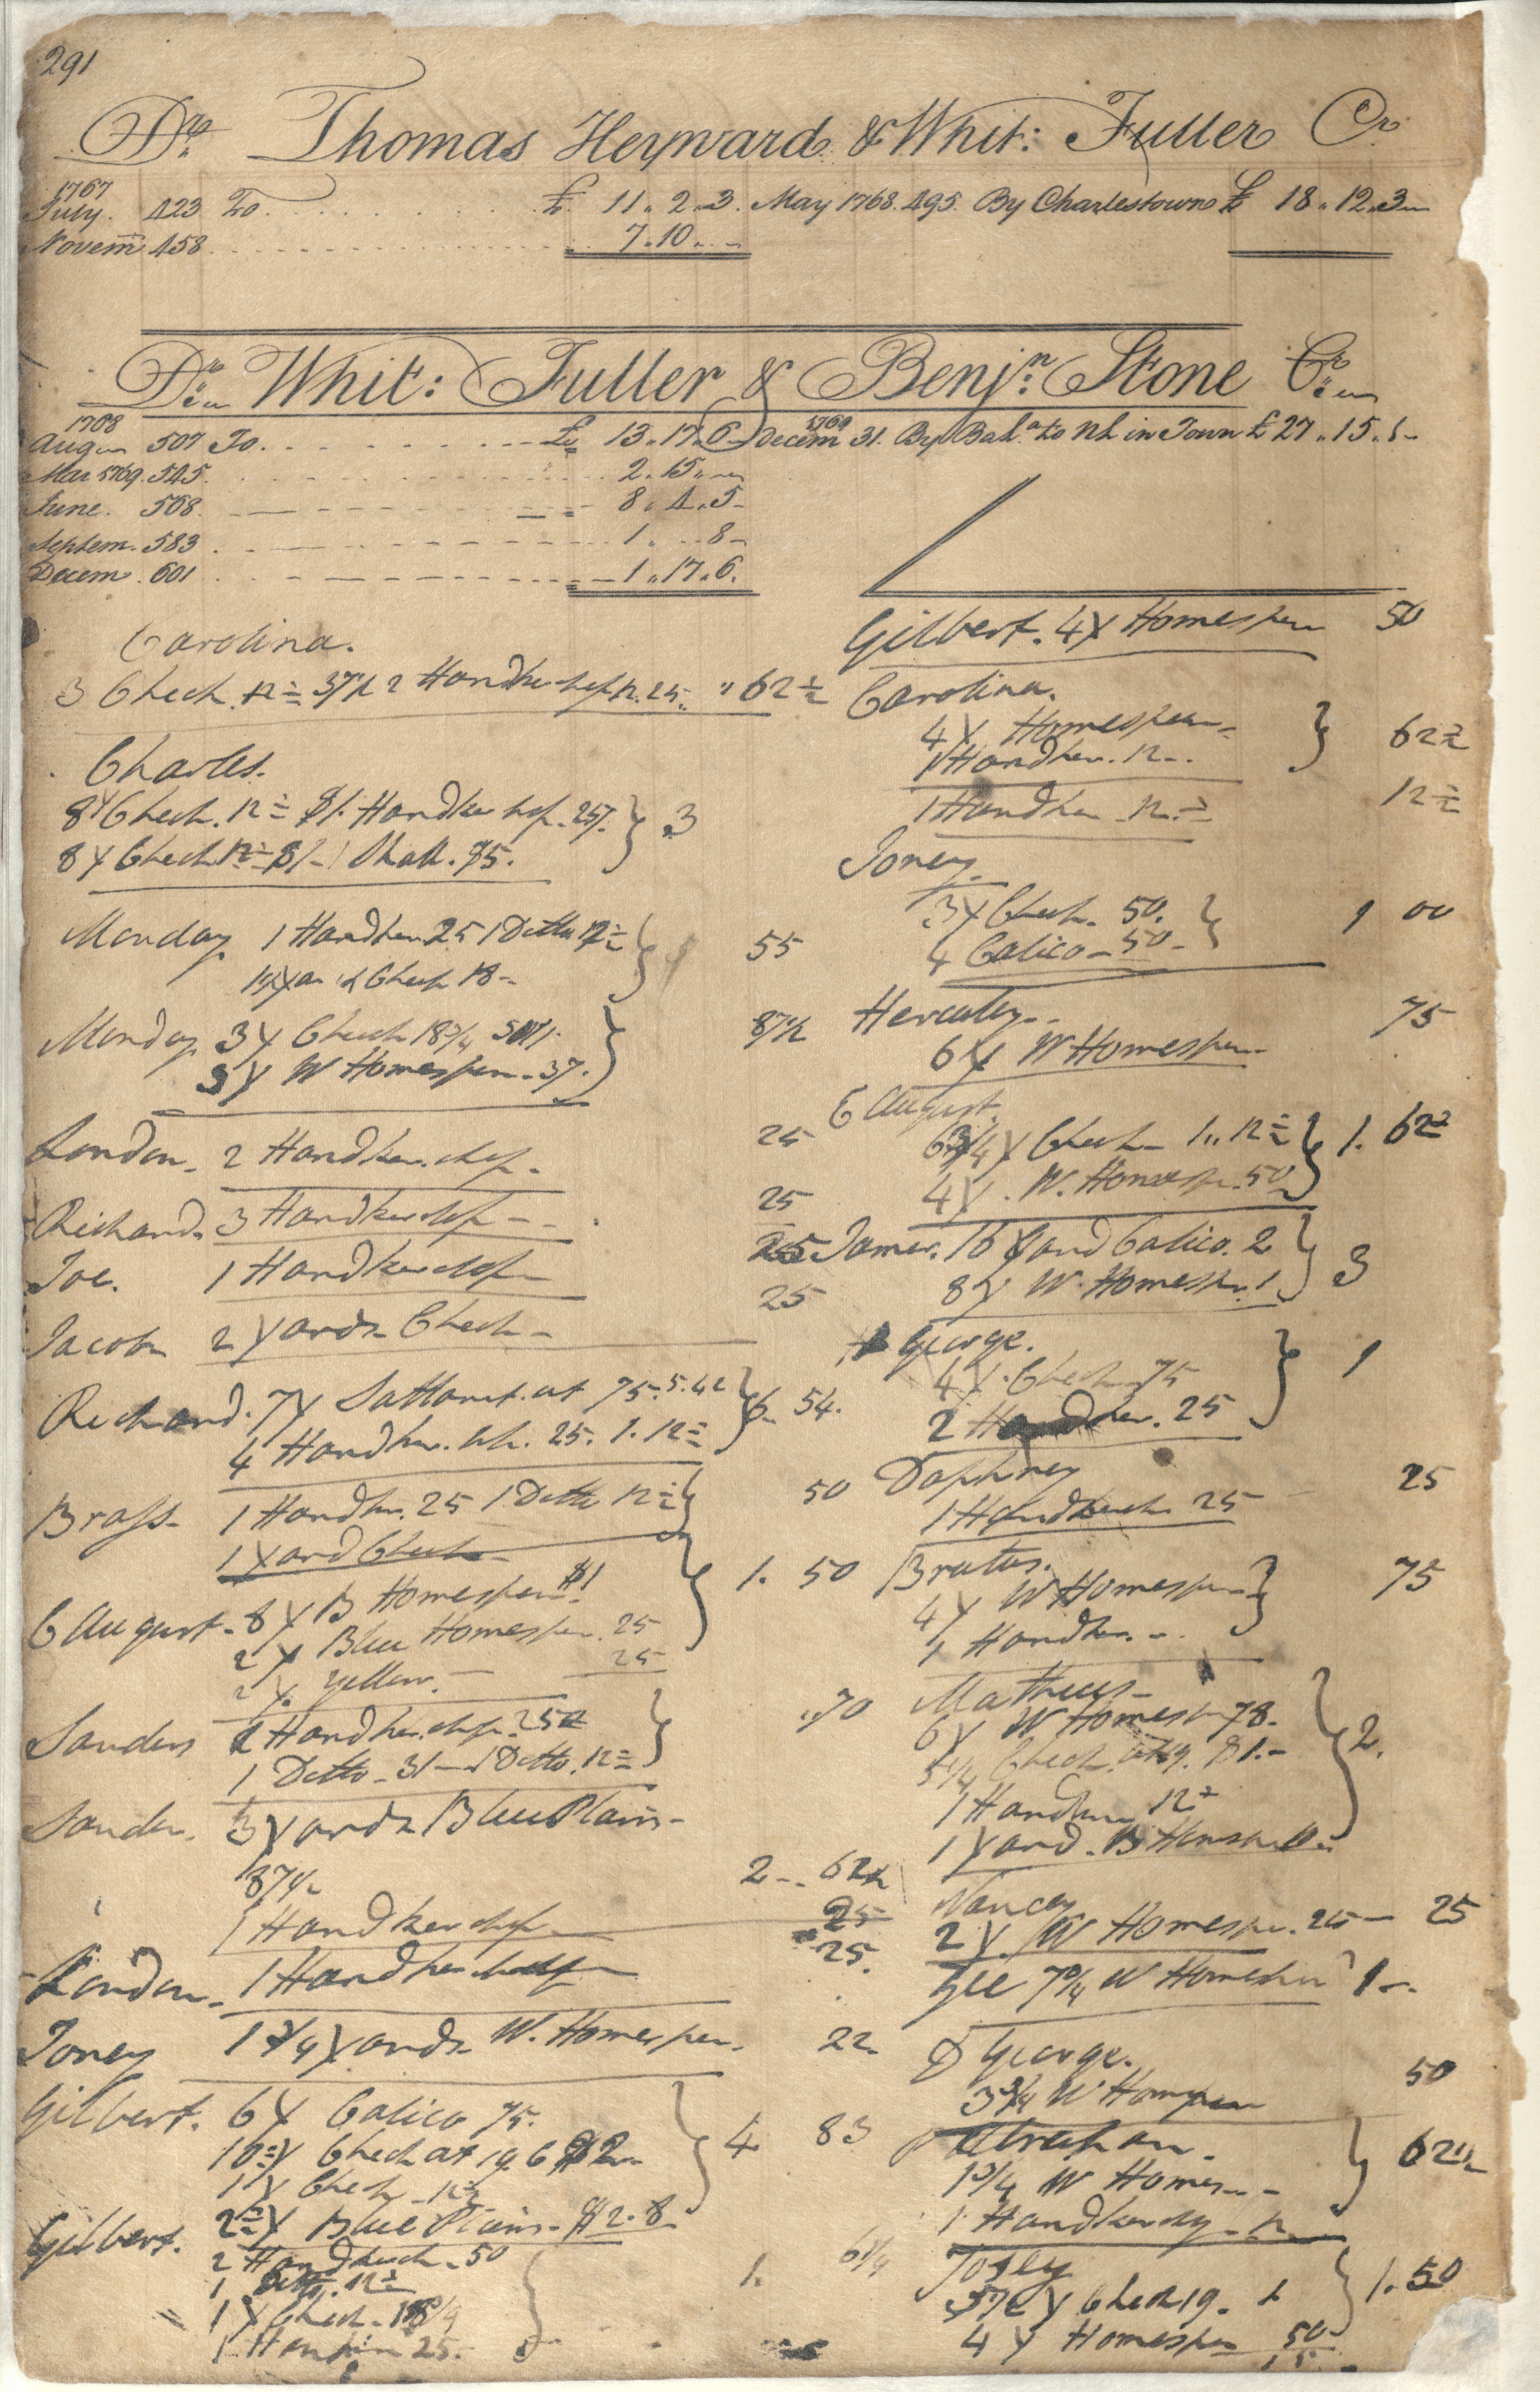 Plowden Weston's Business Ledger, page 291